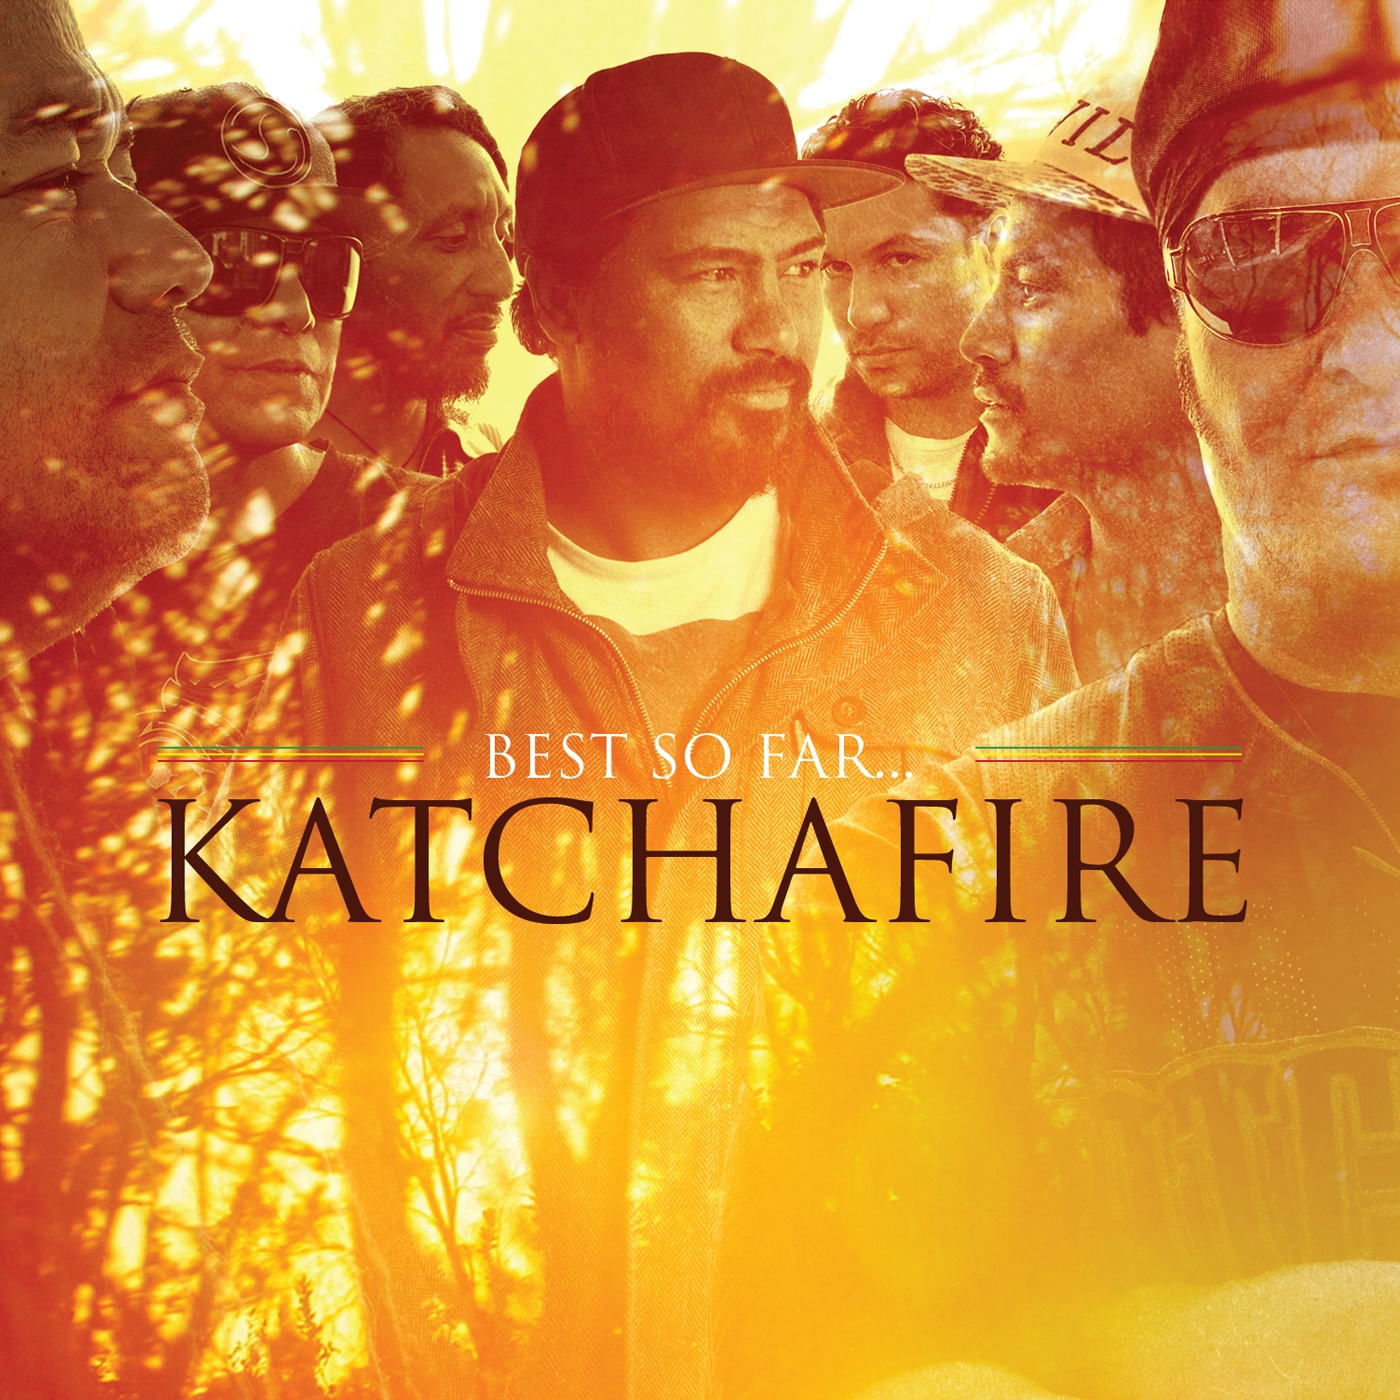 Katchafire Best So Far